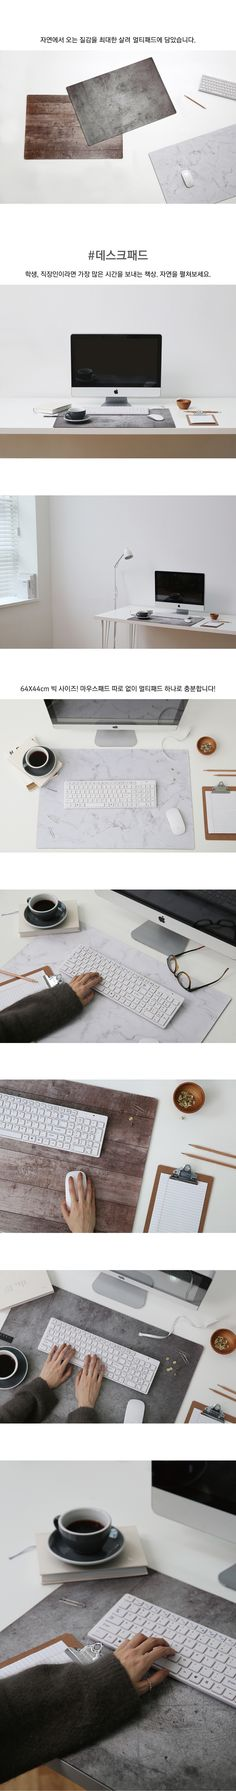 Authentic Korea purchasing set-up artifact background imitating white marble/wood/cement floor mat mouse pad - Shop @ ezbuy Singapore